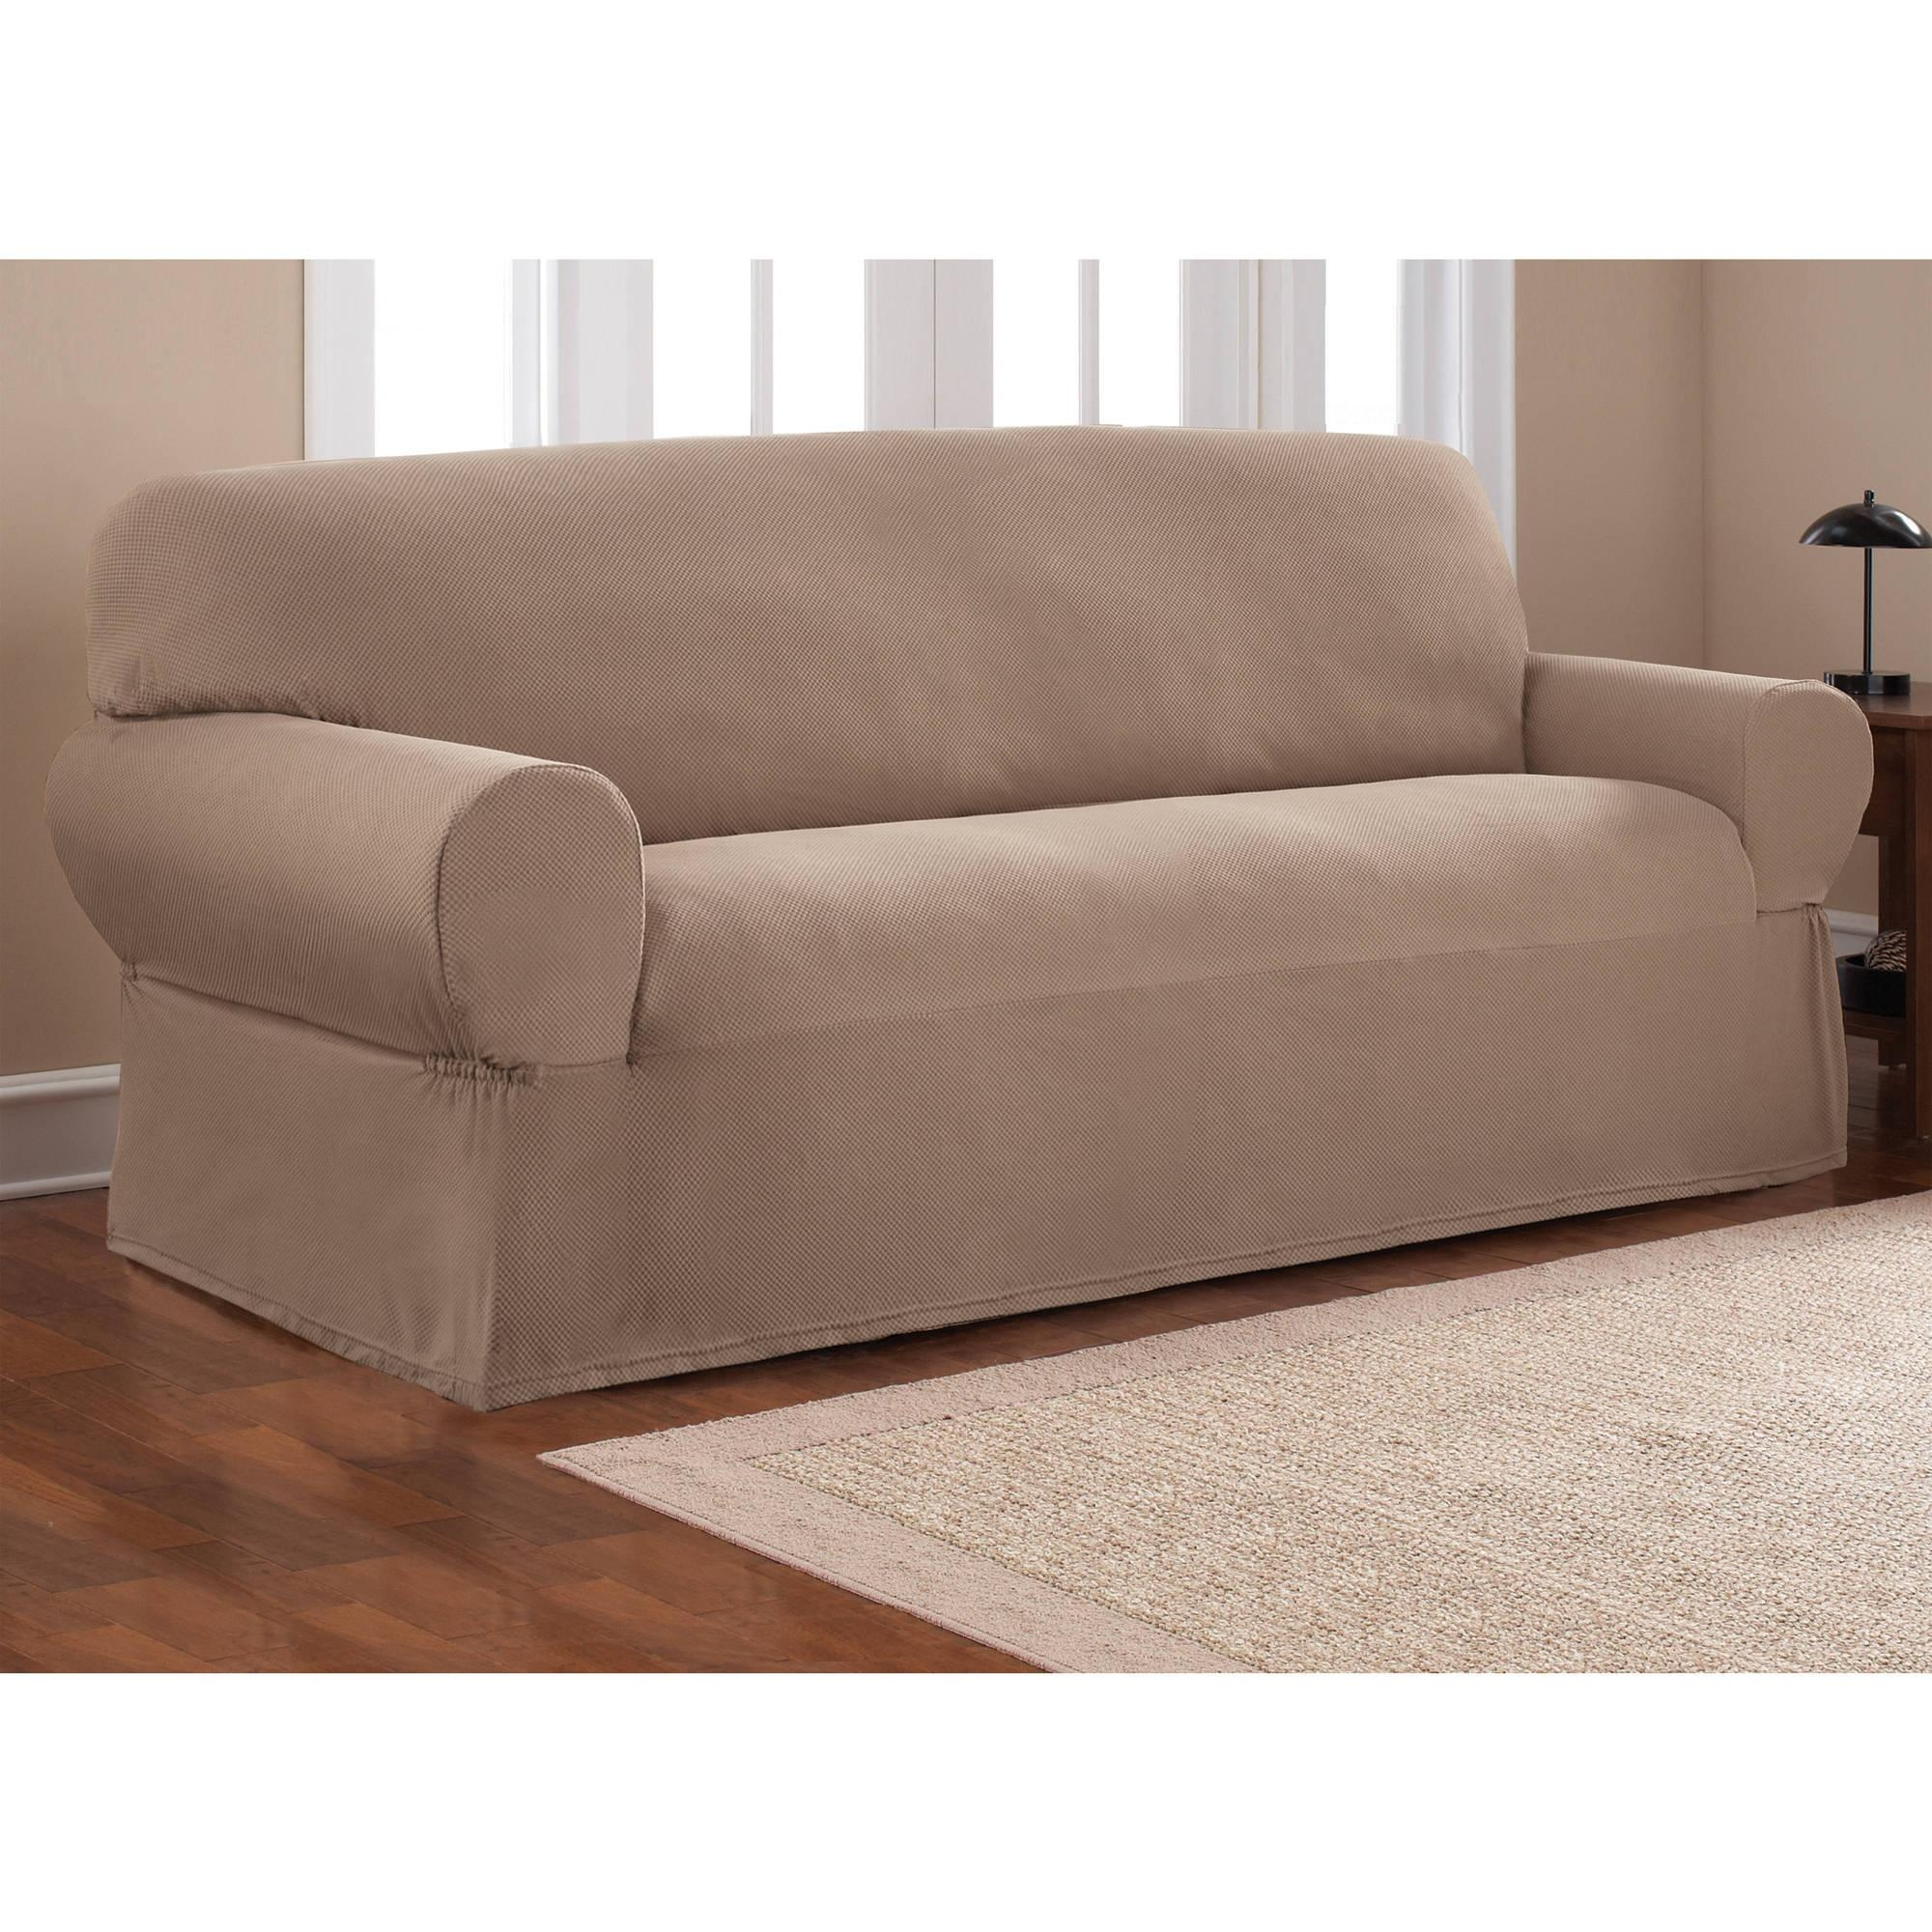 Sofa Covers | Centerfieldbar For Sofa Settee Covers (Image 9 of 22)